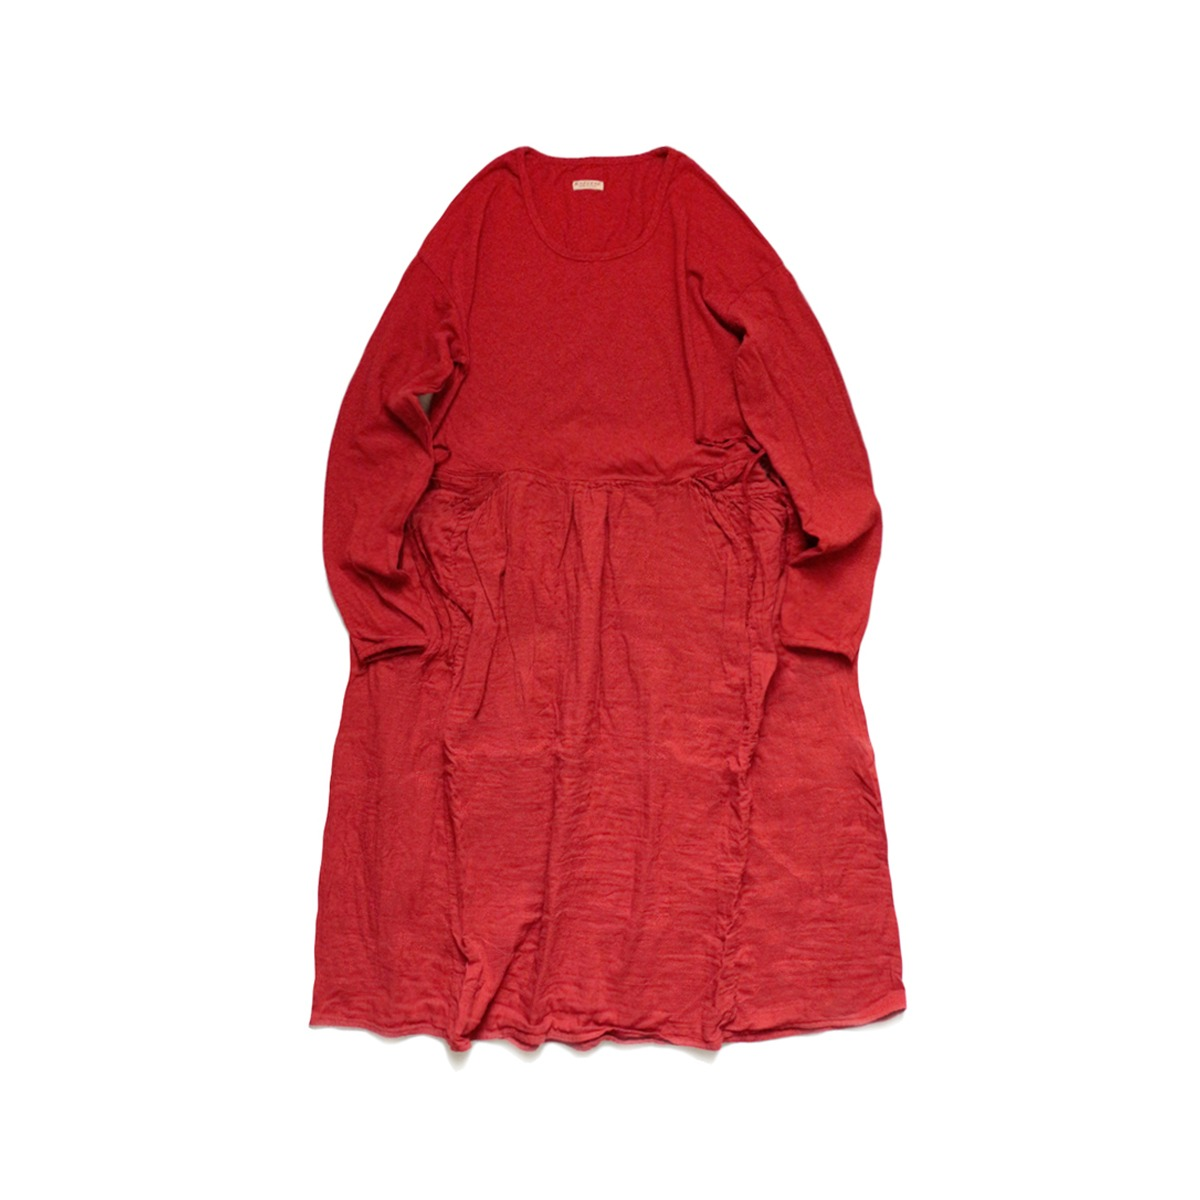 [KAPITAL] JERSEY x DOBLE GAUZE BUTTER DRESS 'RED'